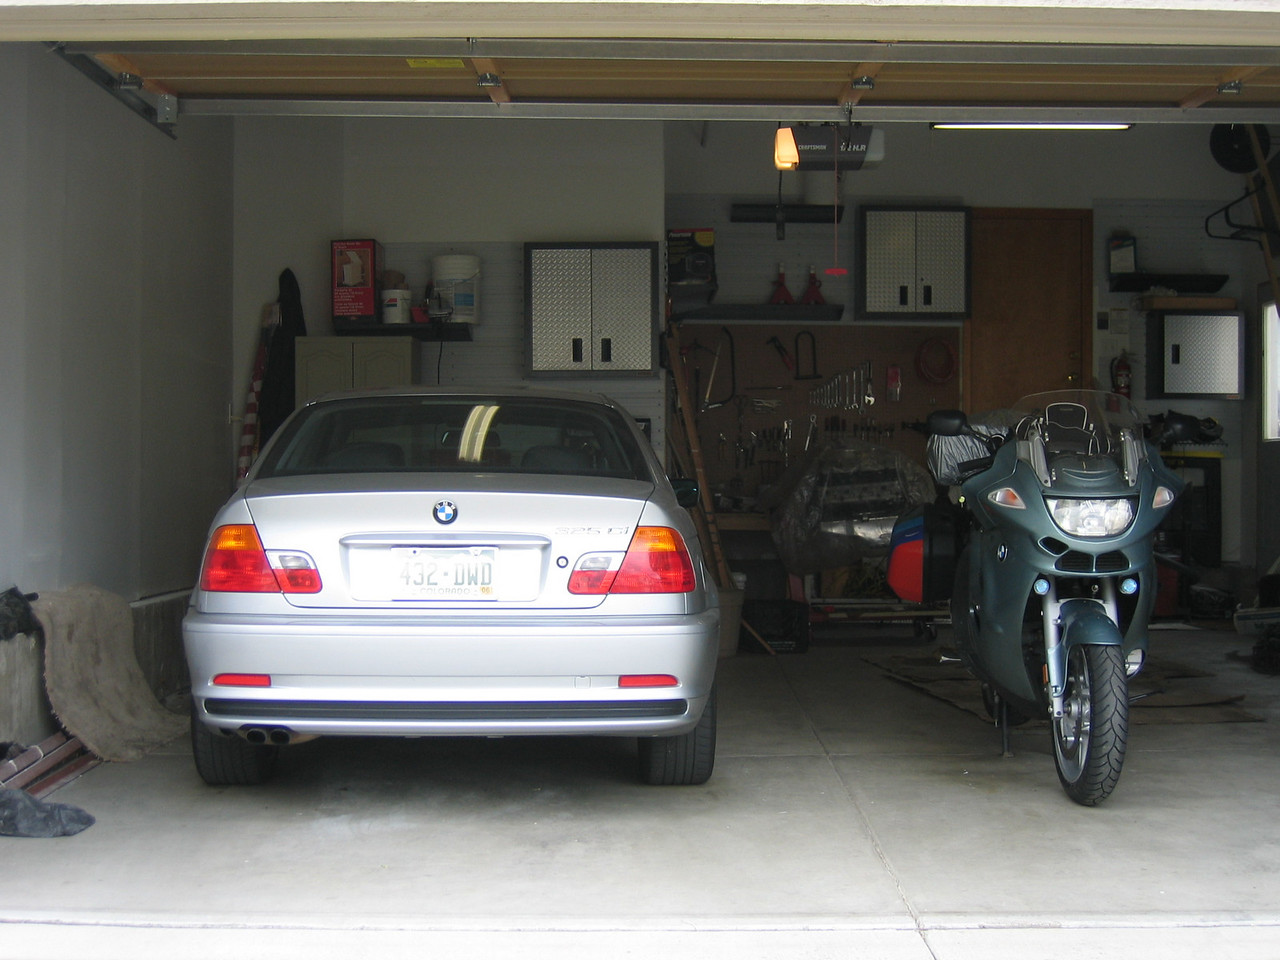 (Click on image to enlarge)<br /> <br /> Motorcycle ready to go, parked next to it's brother Bimmer.  Of course, some very bad weather is moving in as I try to leave, forcing me to change my plans and reverse the route.  The weather is worse out west, so I decide to head south to New Mexico, then west to Phoenix.<br /> <br /> Unfortunately, I miss my weather window, and get caught in a terrible hail / lighting / torrential downpour as I get to the Denver Tech Center.  Stupidly I continue on.<br /> <br /> Breaking through the weather as I reach Monument, the traffic speeds pick up, until I reach a complete stop due to an accident in Colorado Springs.  Not a good way to start the trip >:(